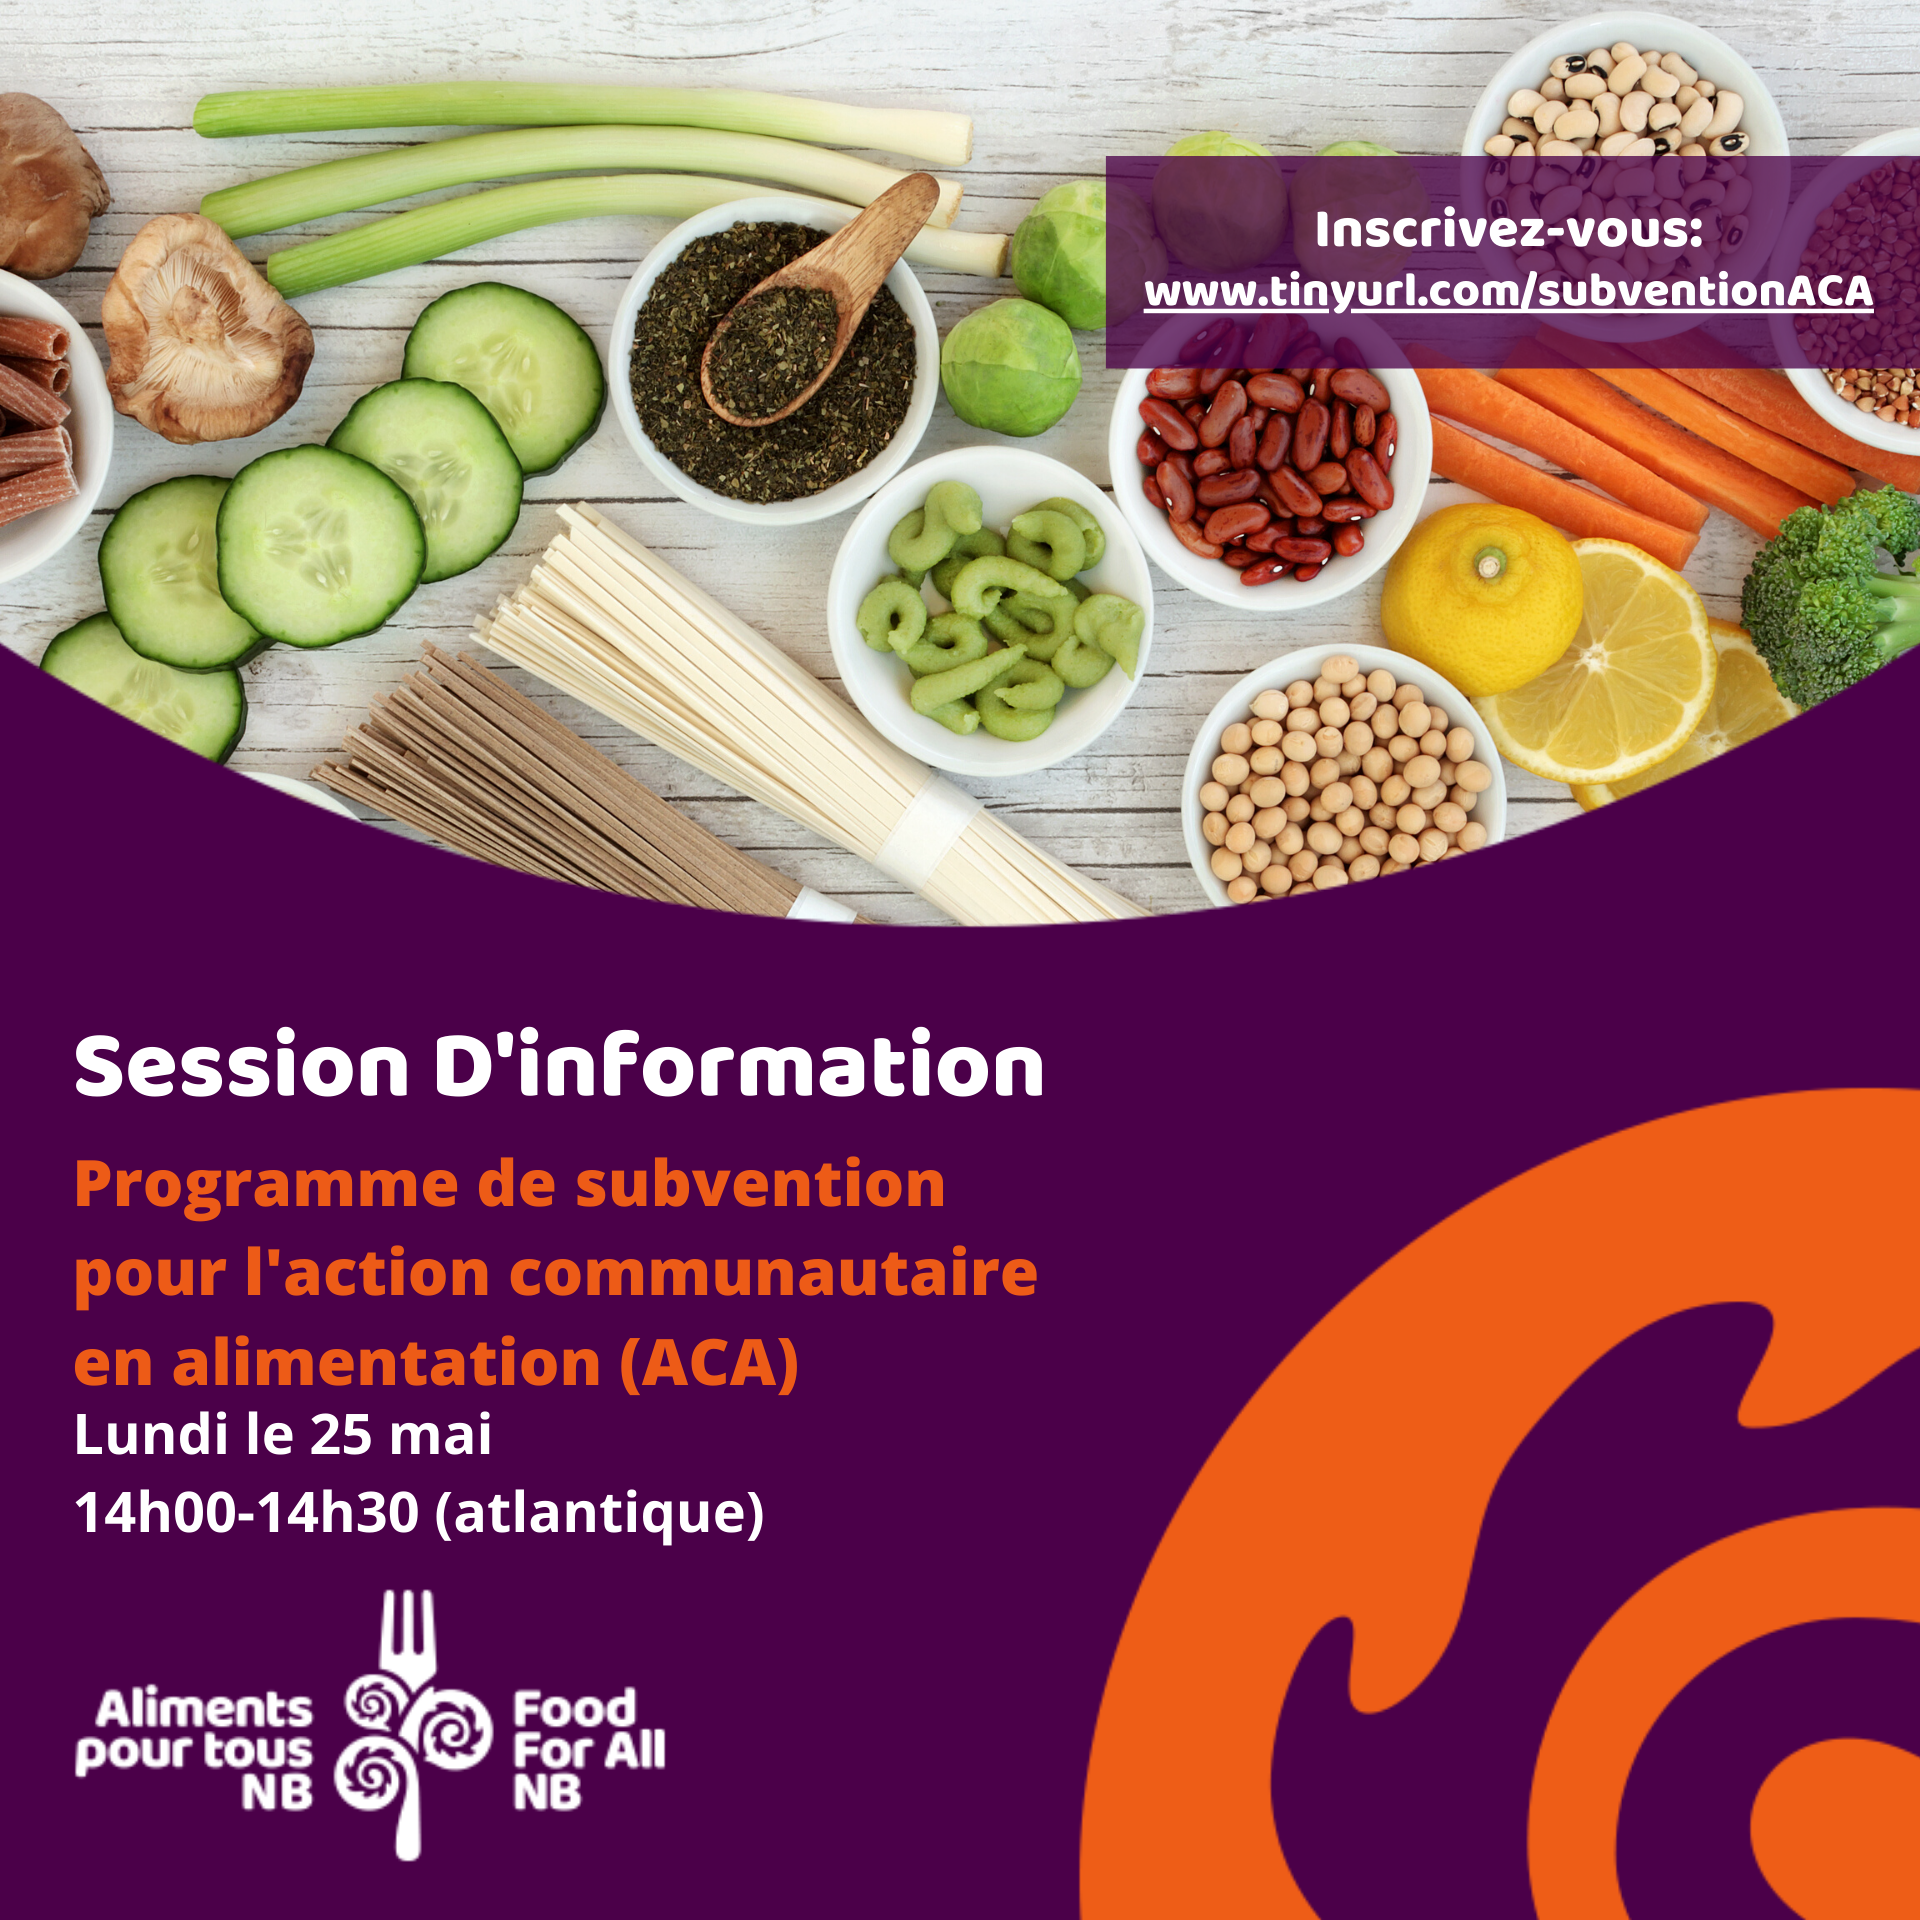 Programme de subvention pour l'action communautaire en alimentation: Session d'information